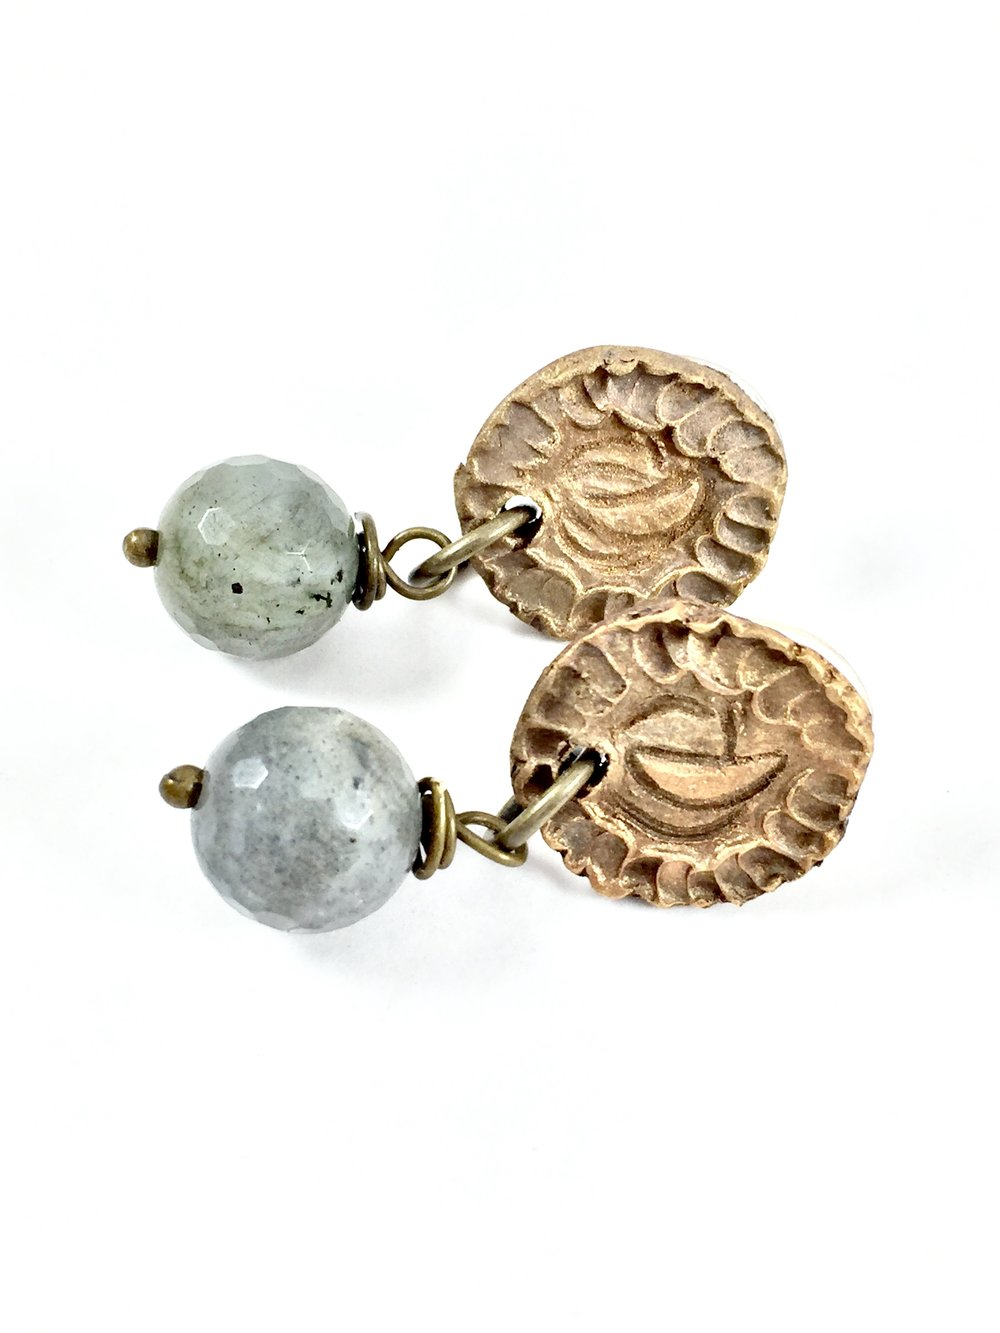 Labradorite drop earrings with bronze metal pendant.